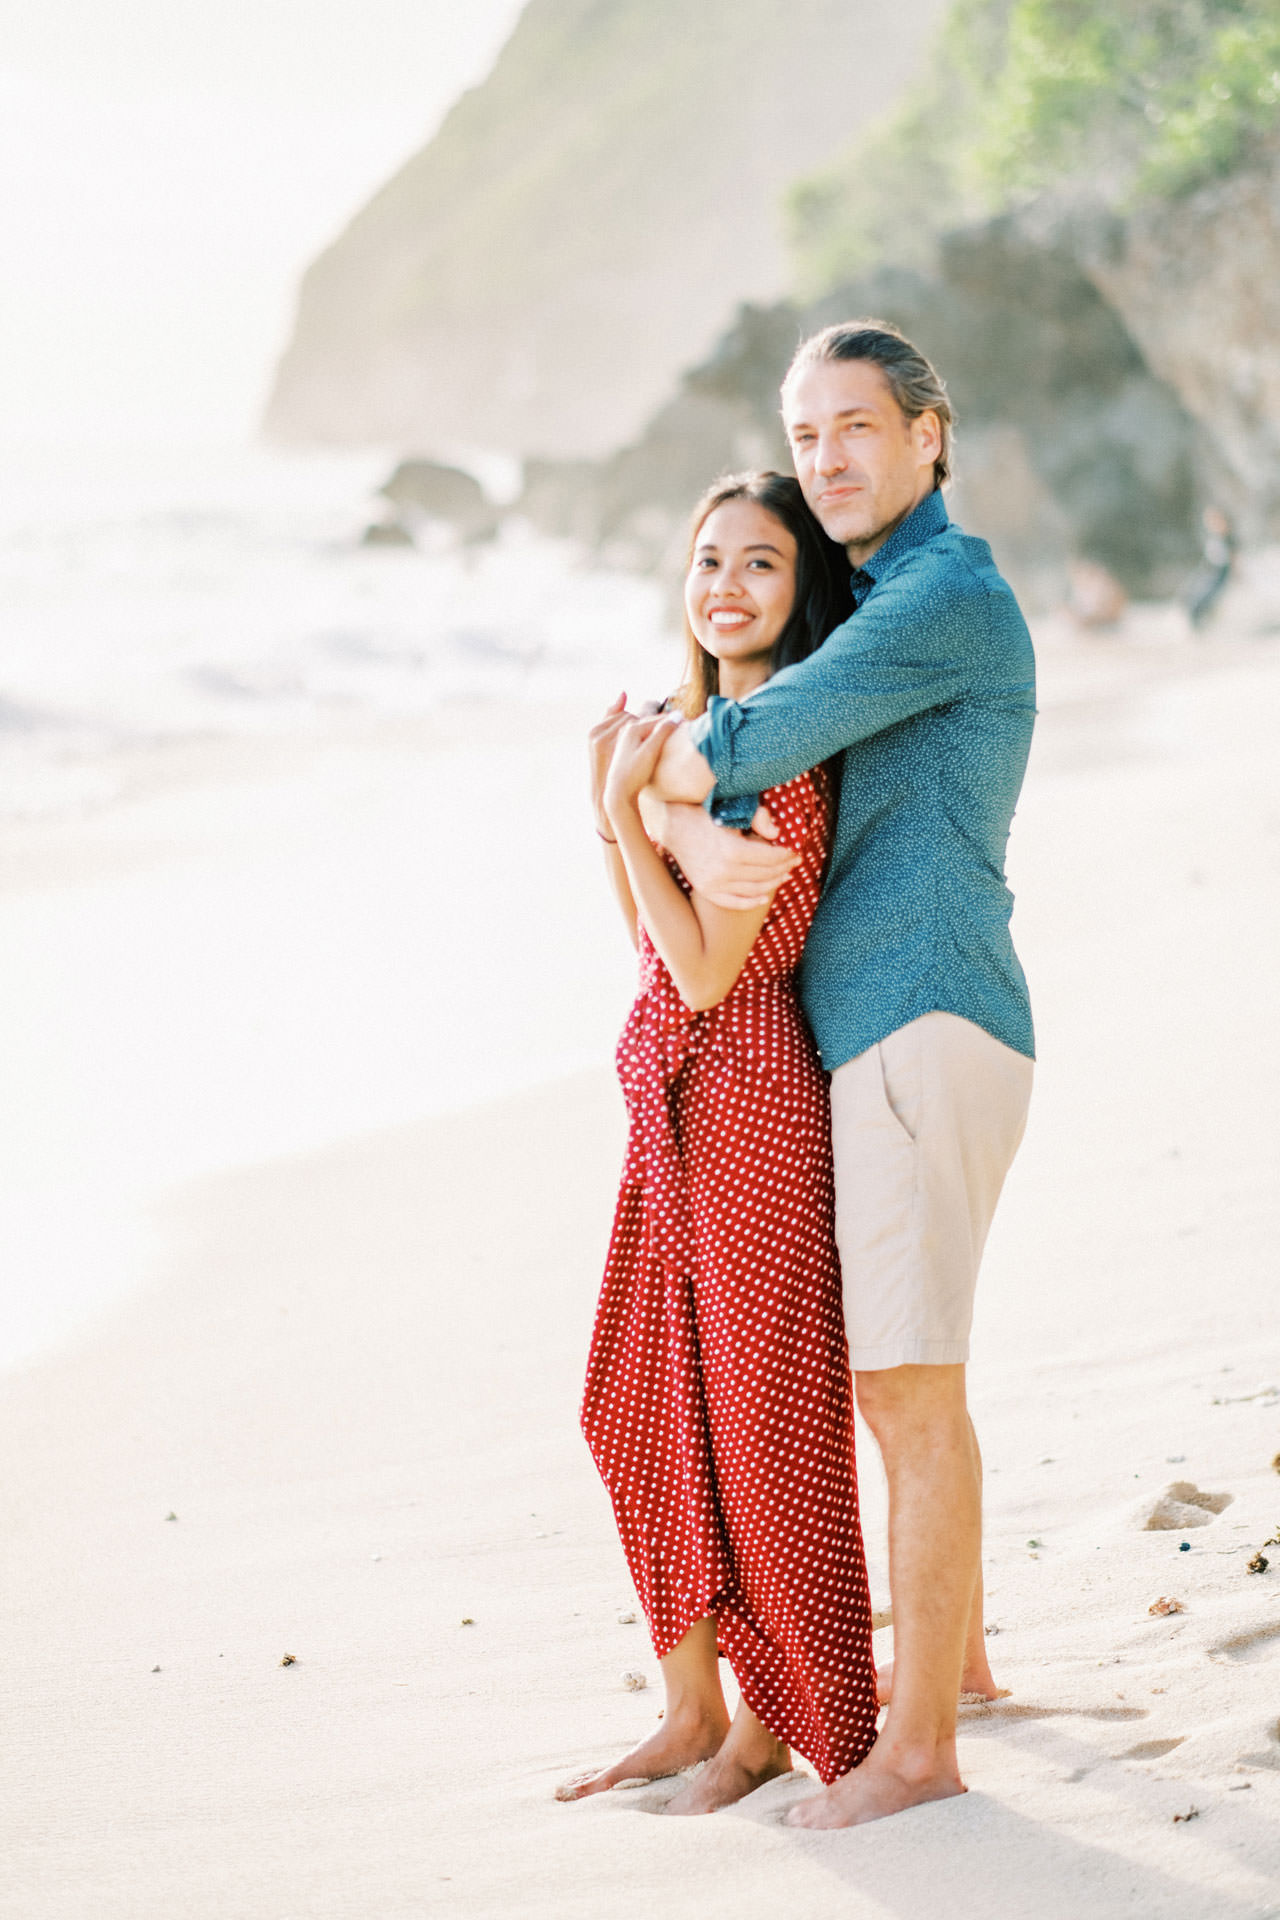 Bali's Beach Marriage Proposal with a Proposal Video! 18